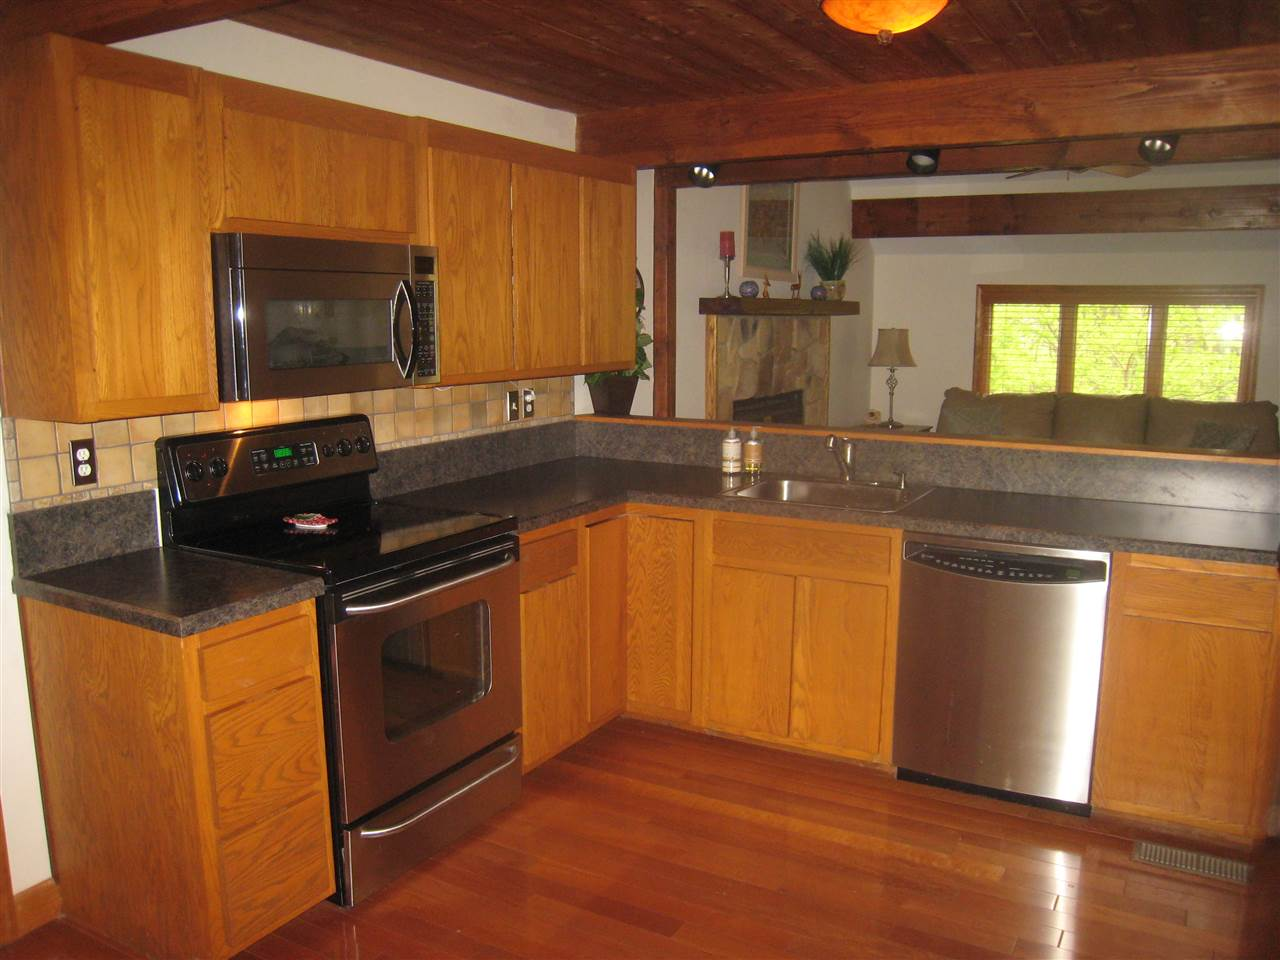 Post & Beam,Craftsman, Detached - WINTERGREEN RESORT, VA (photo 1)